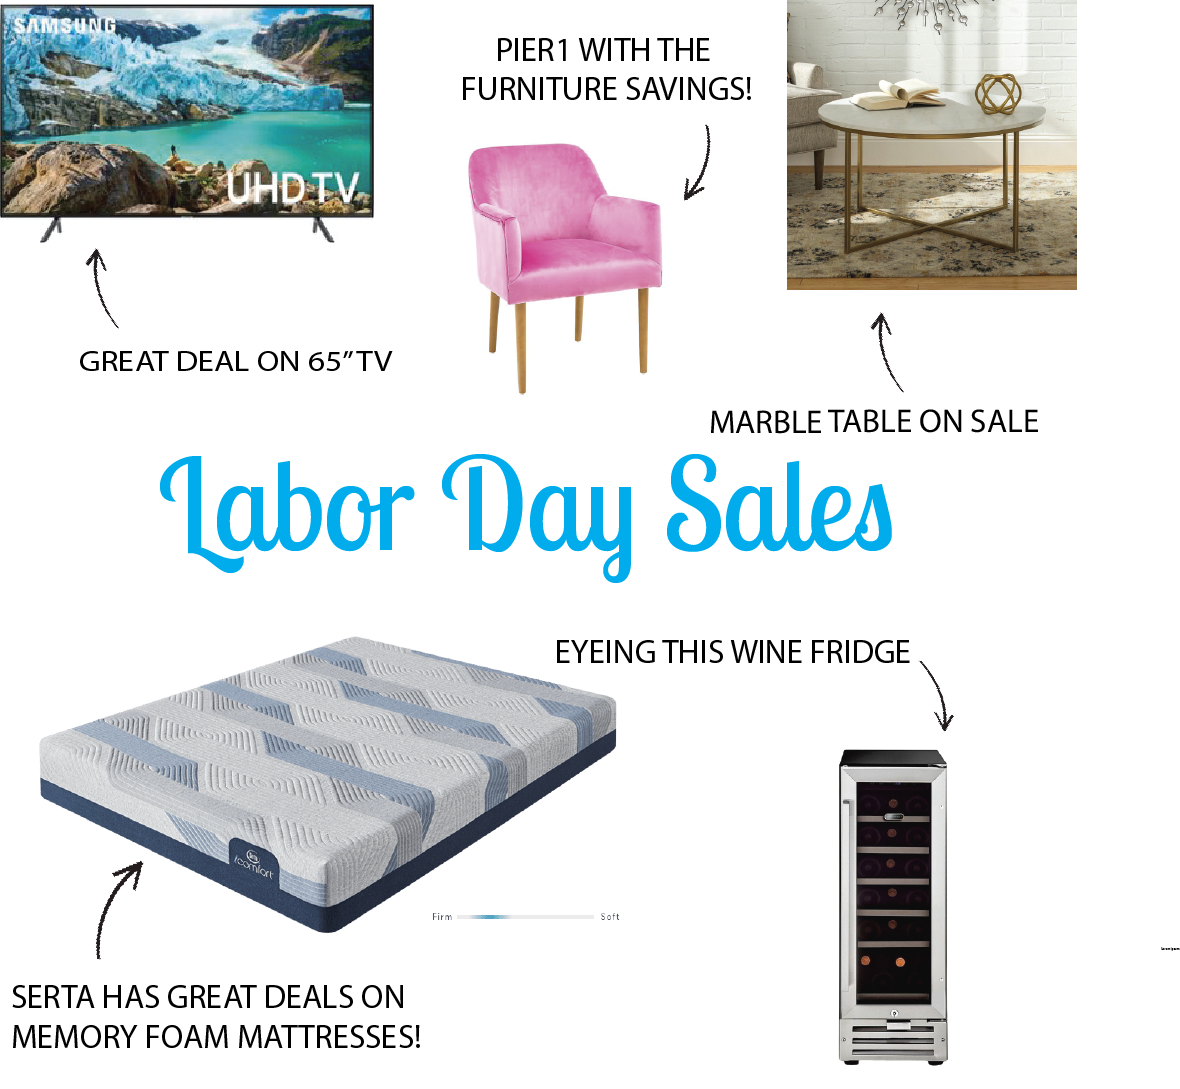 Instagram Post - Labor Day Sales